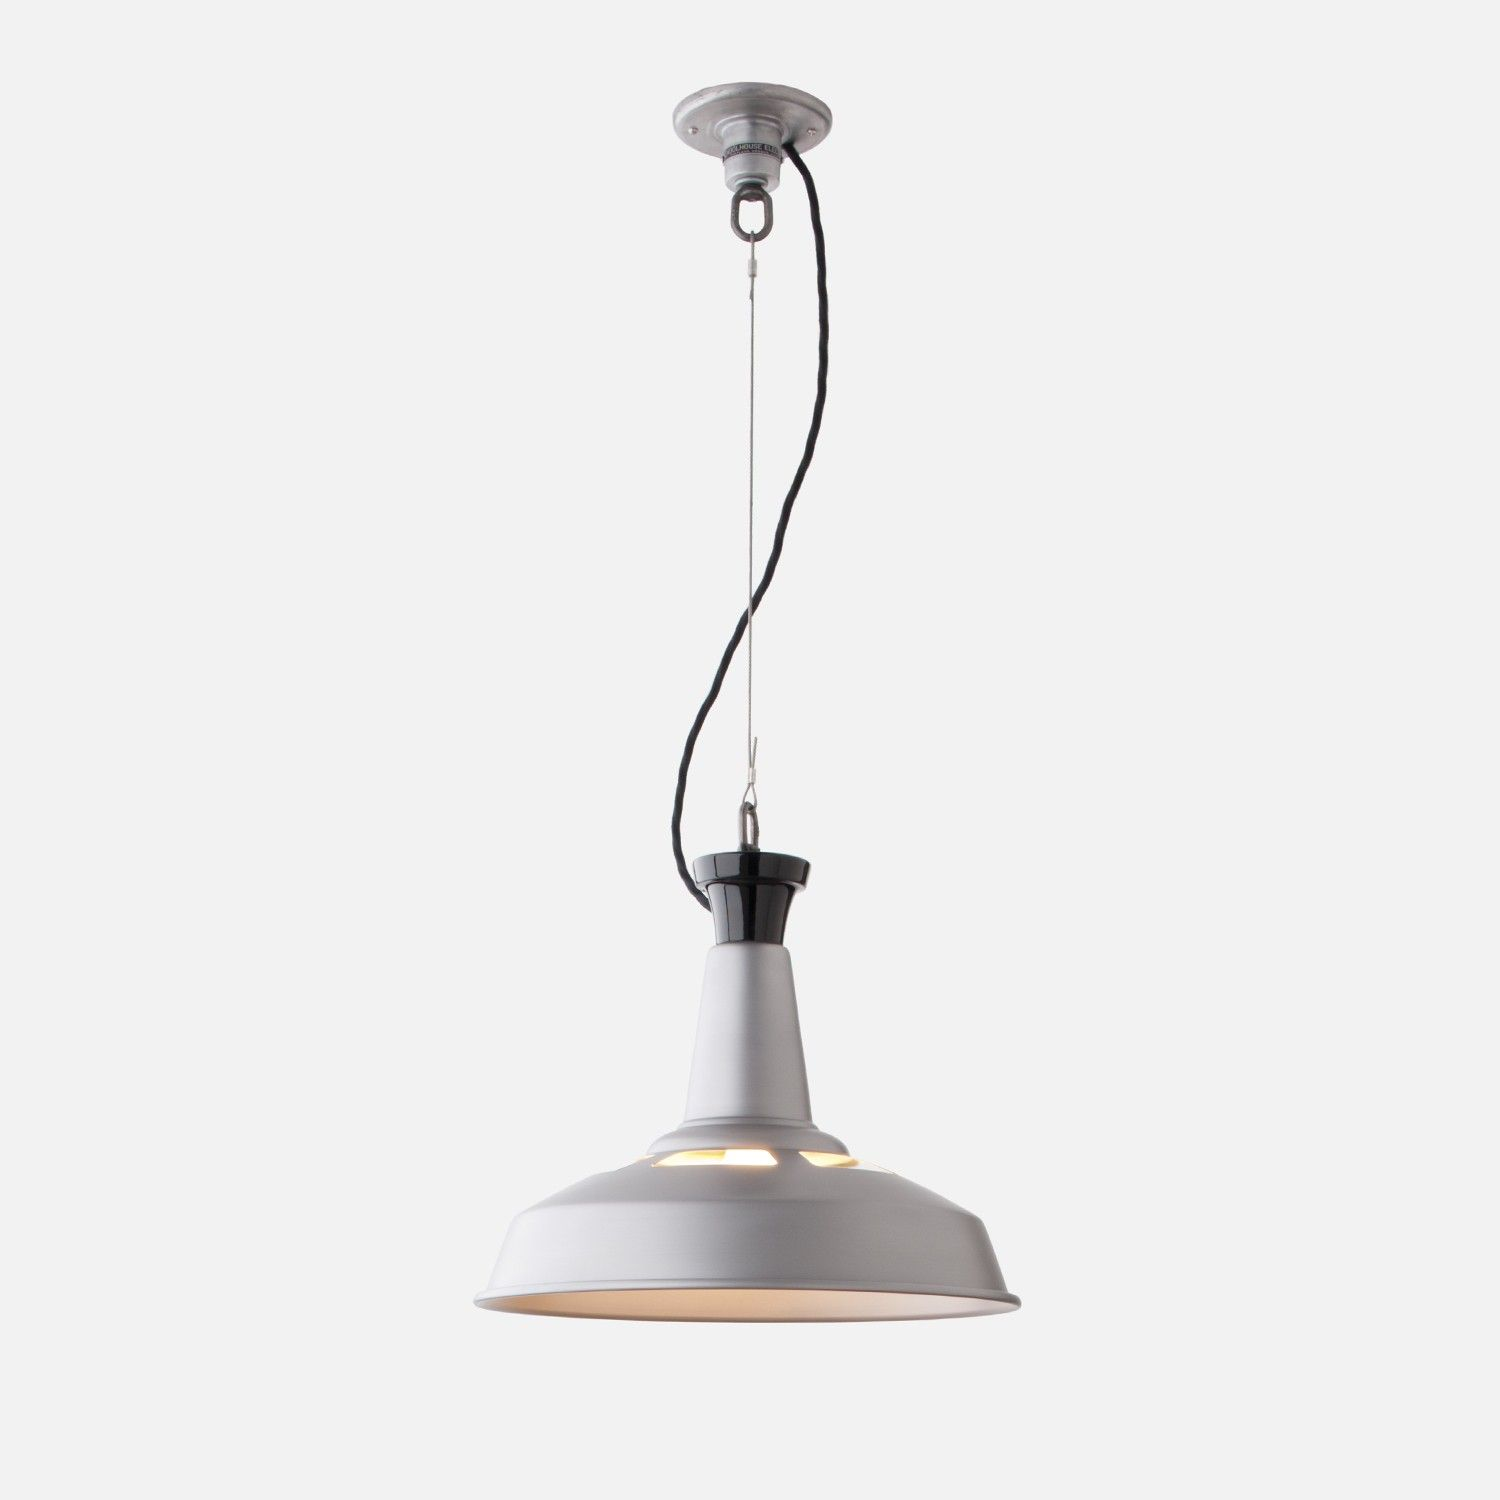 cable pendant lighting. Industrial And Utilitarian, The Factory Light No. 5 Cable Pendant Is A Perfect Example Of Traditional Factory-style Lighting Made Popular In Extra-wi